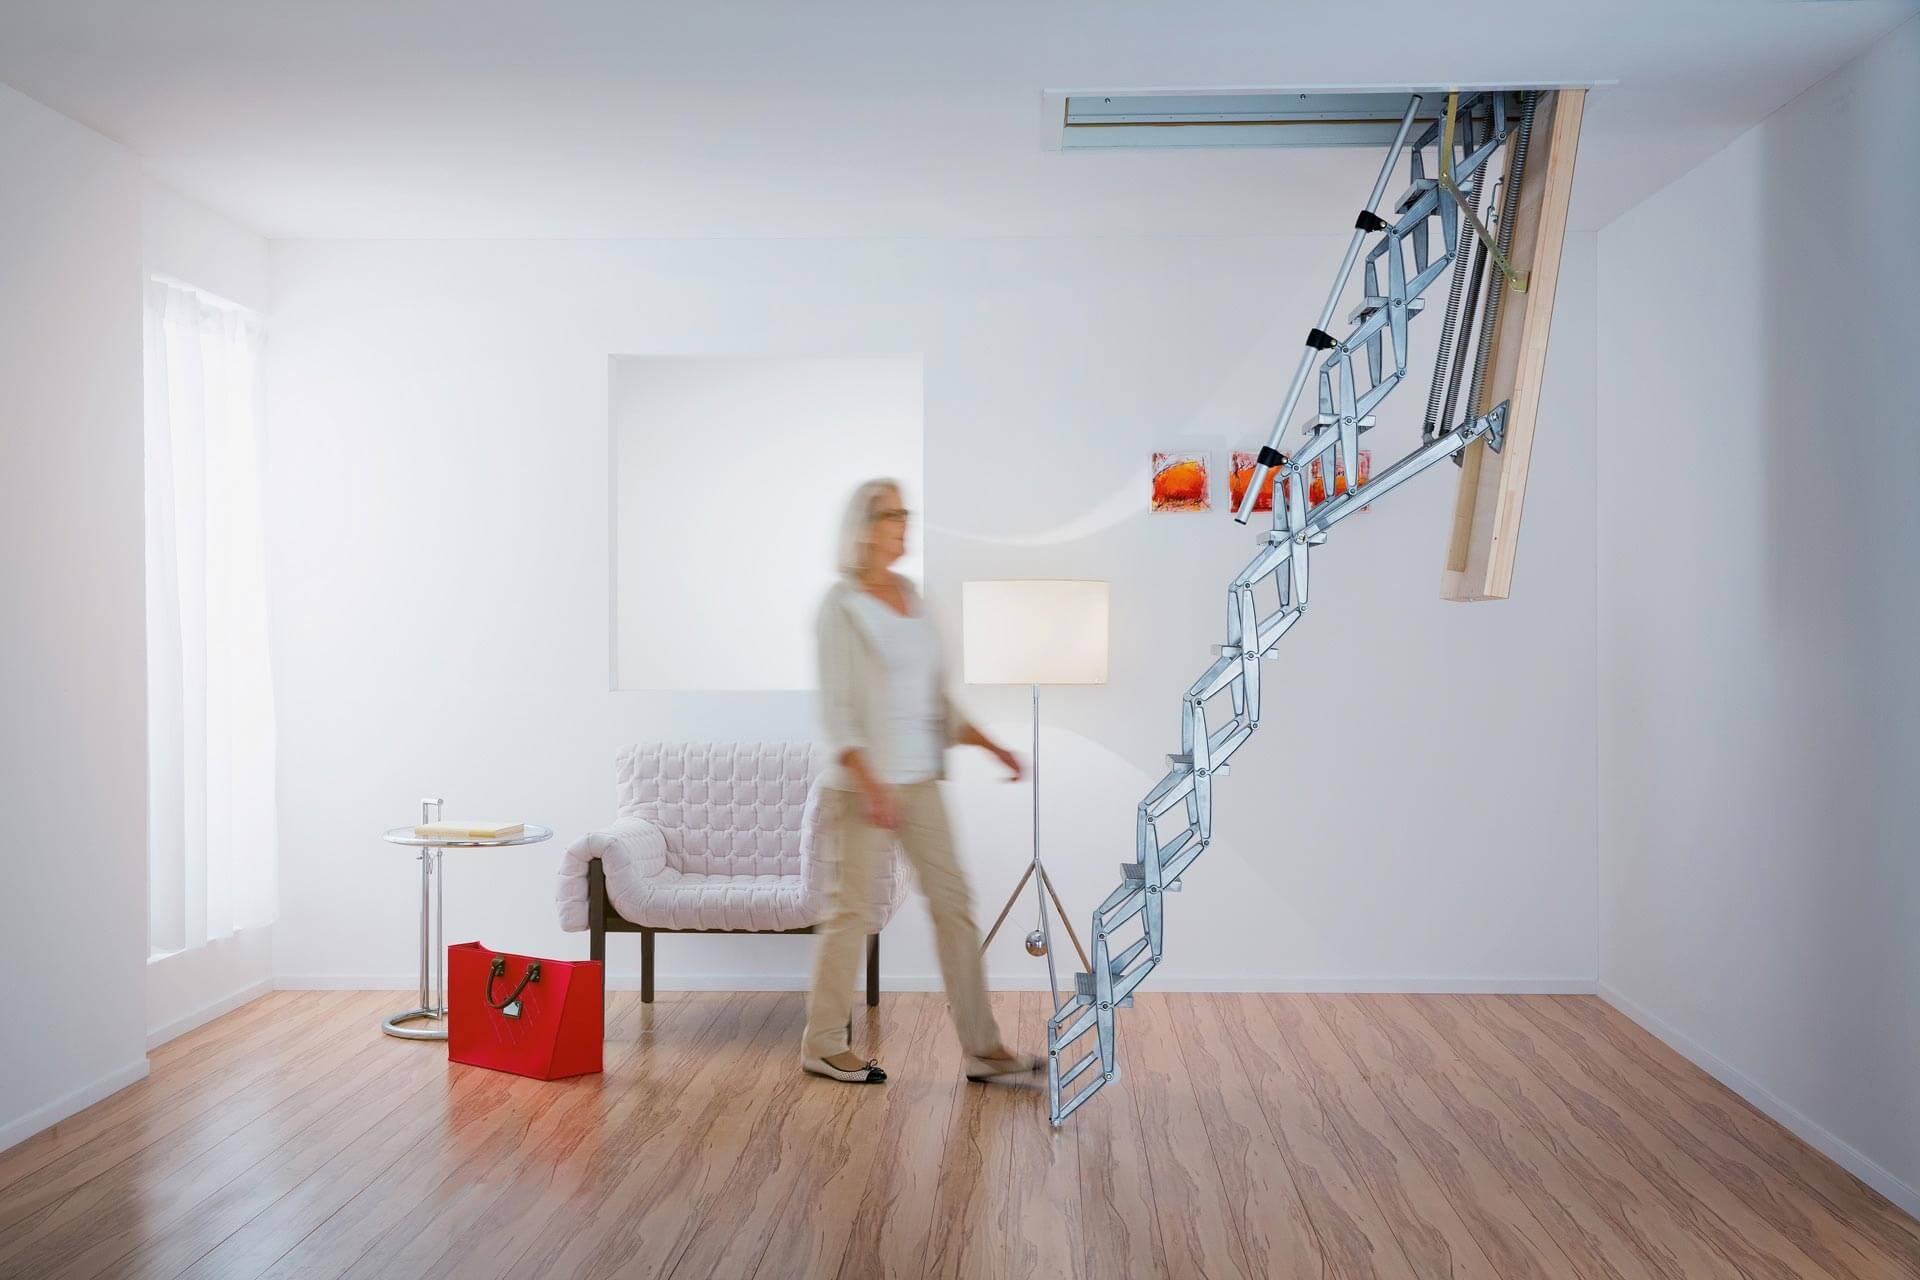 Insulated loft hatch with ladder - The Supreme is heavy duty, easy to operate and highly insulated.